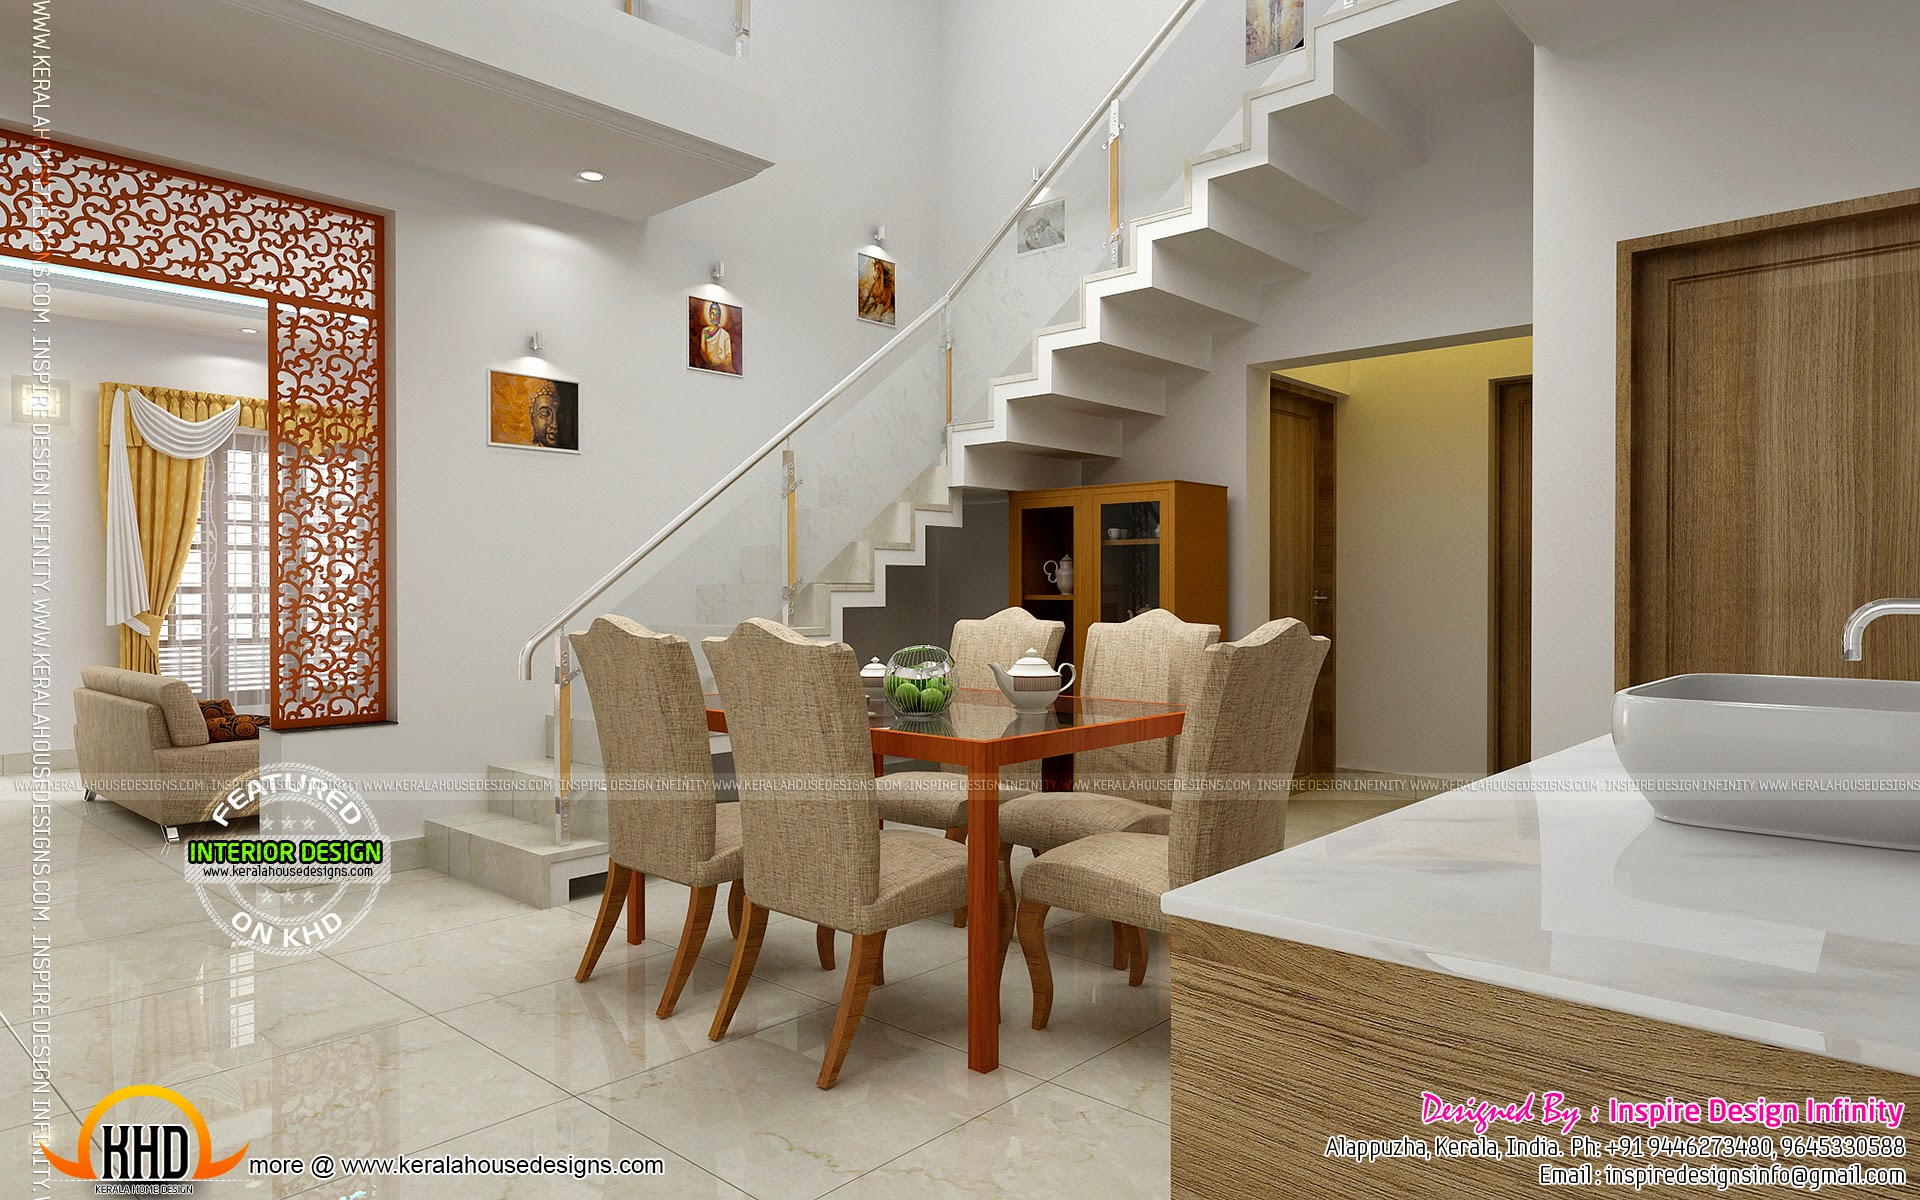 Dining room designs kerala home design and floor plans for Home room design photos